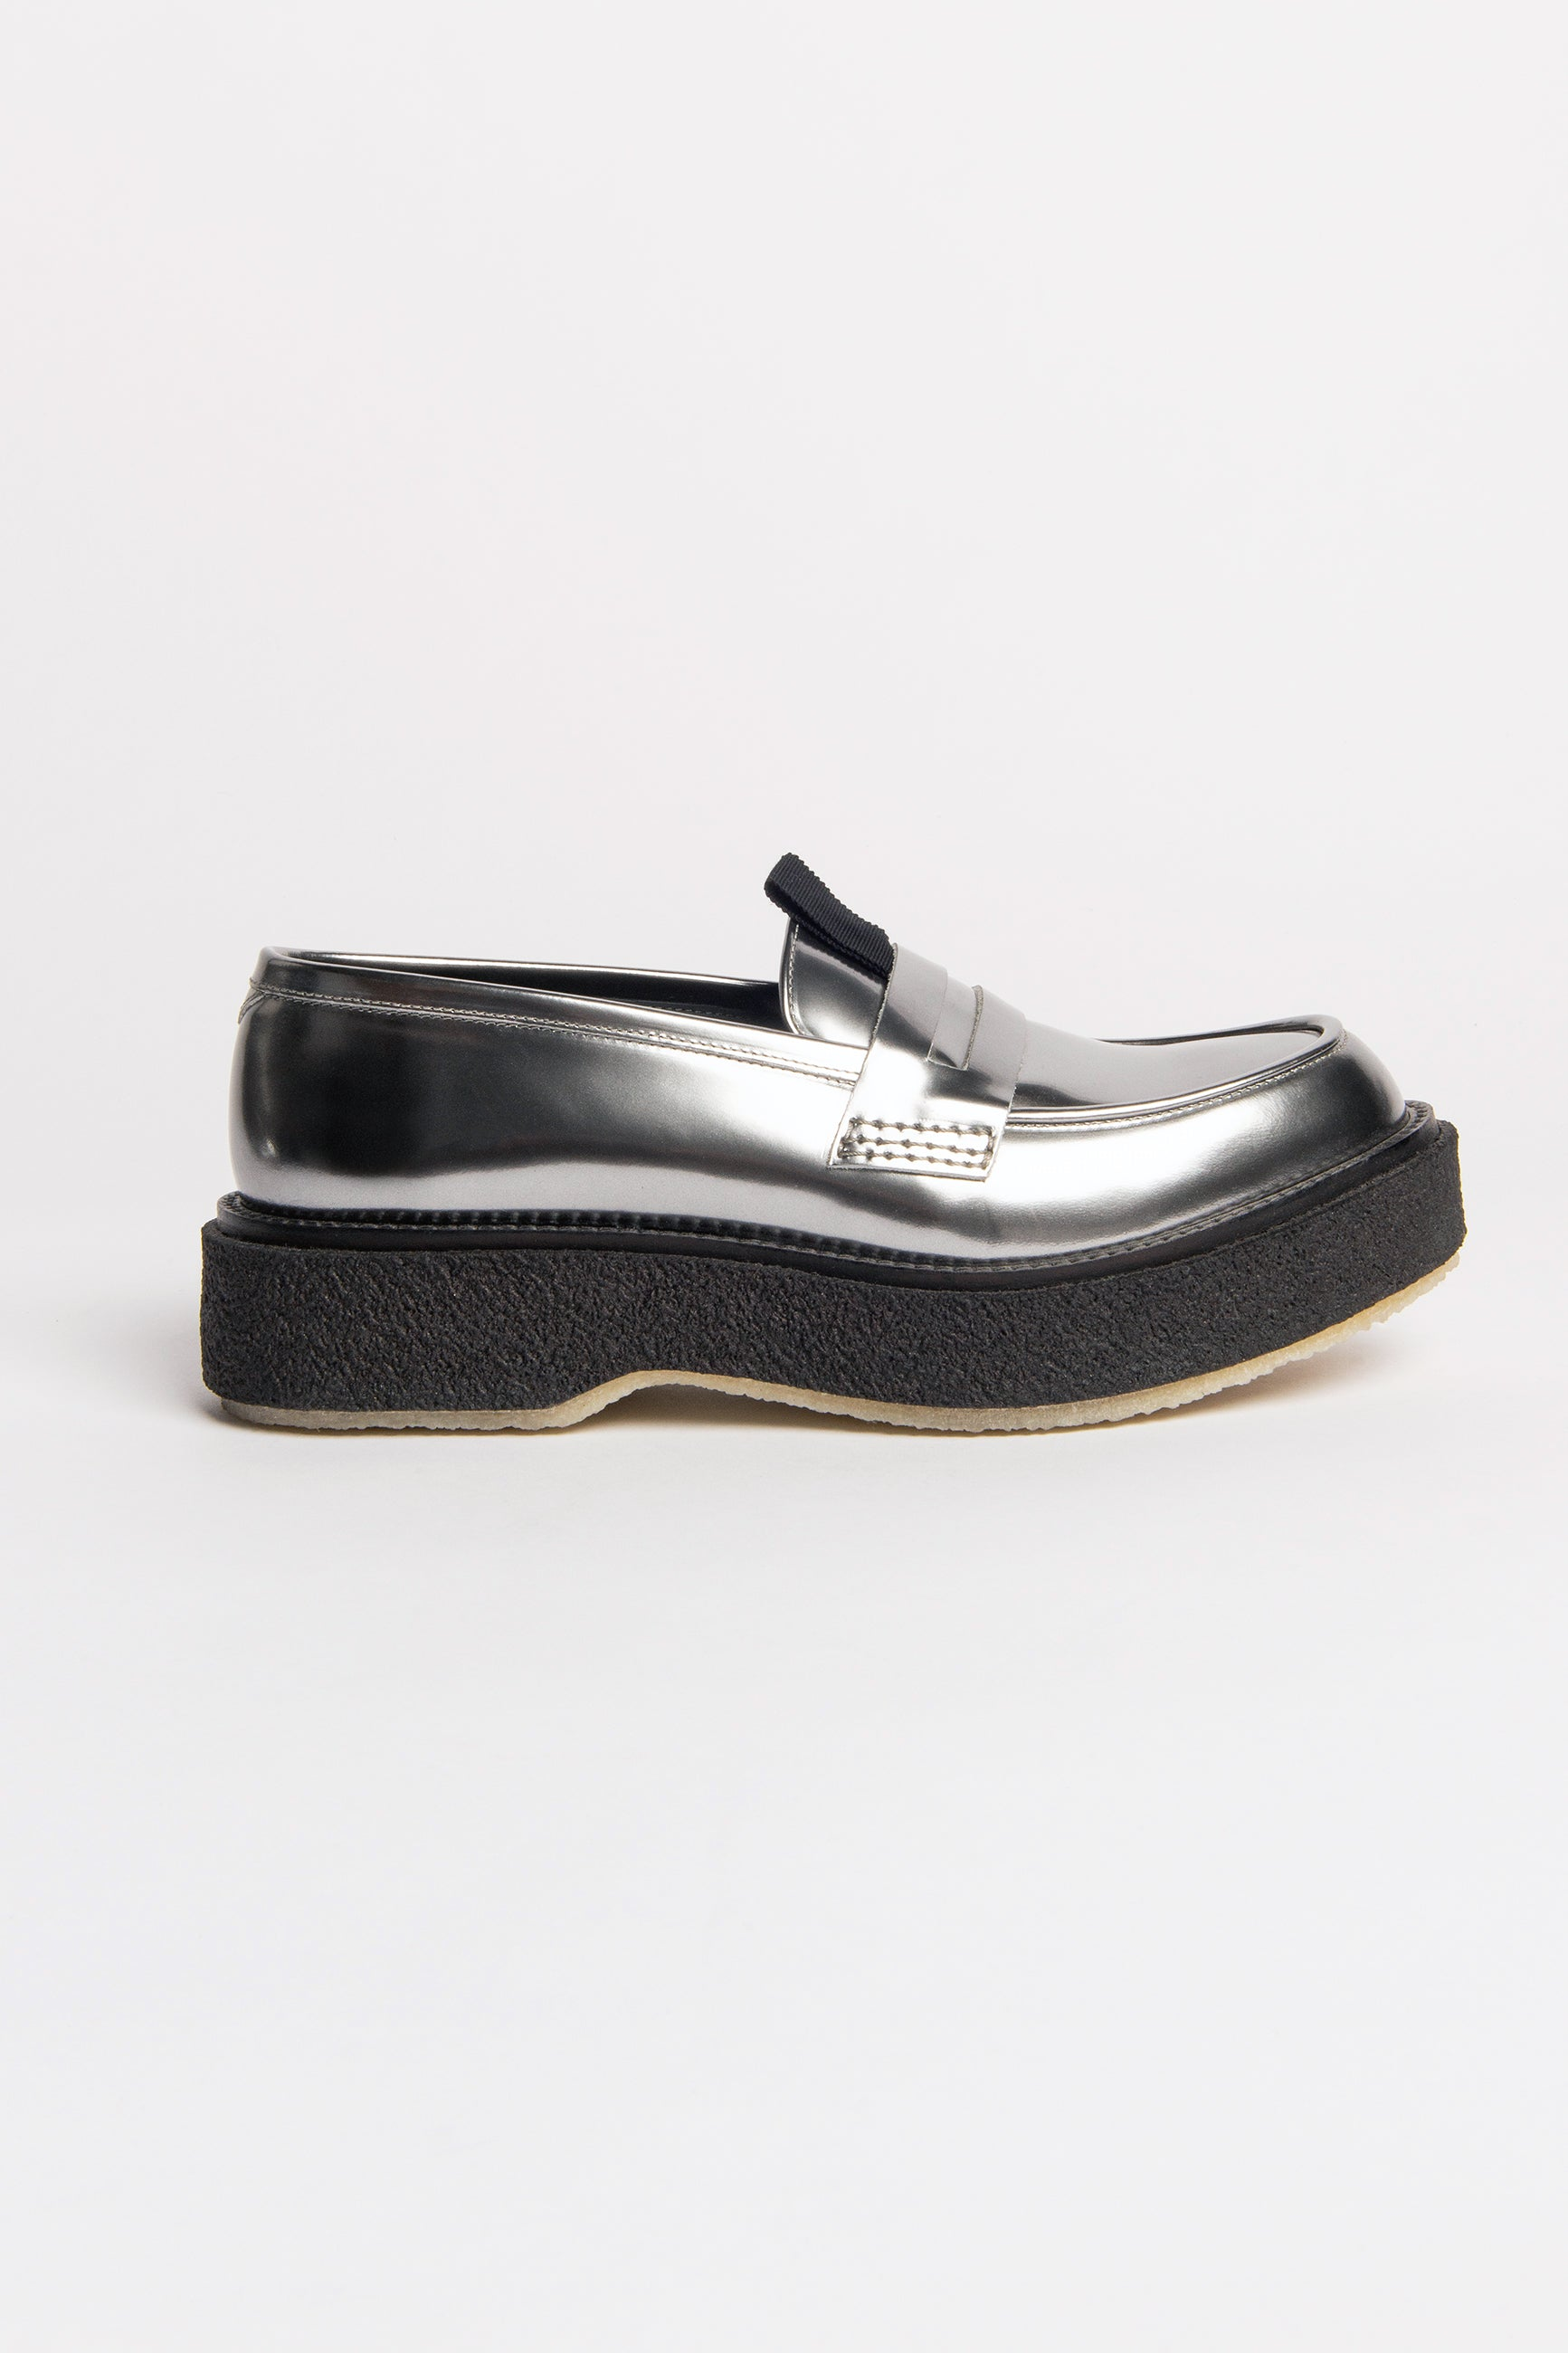 Études Type 143 Silver Shoes 2